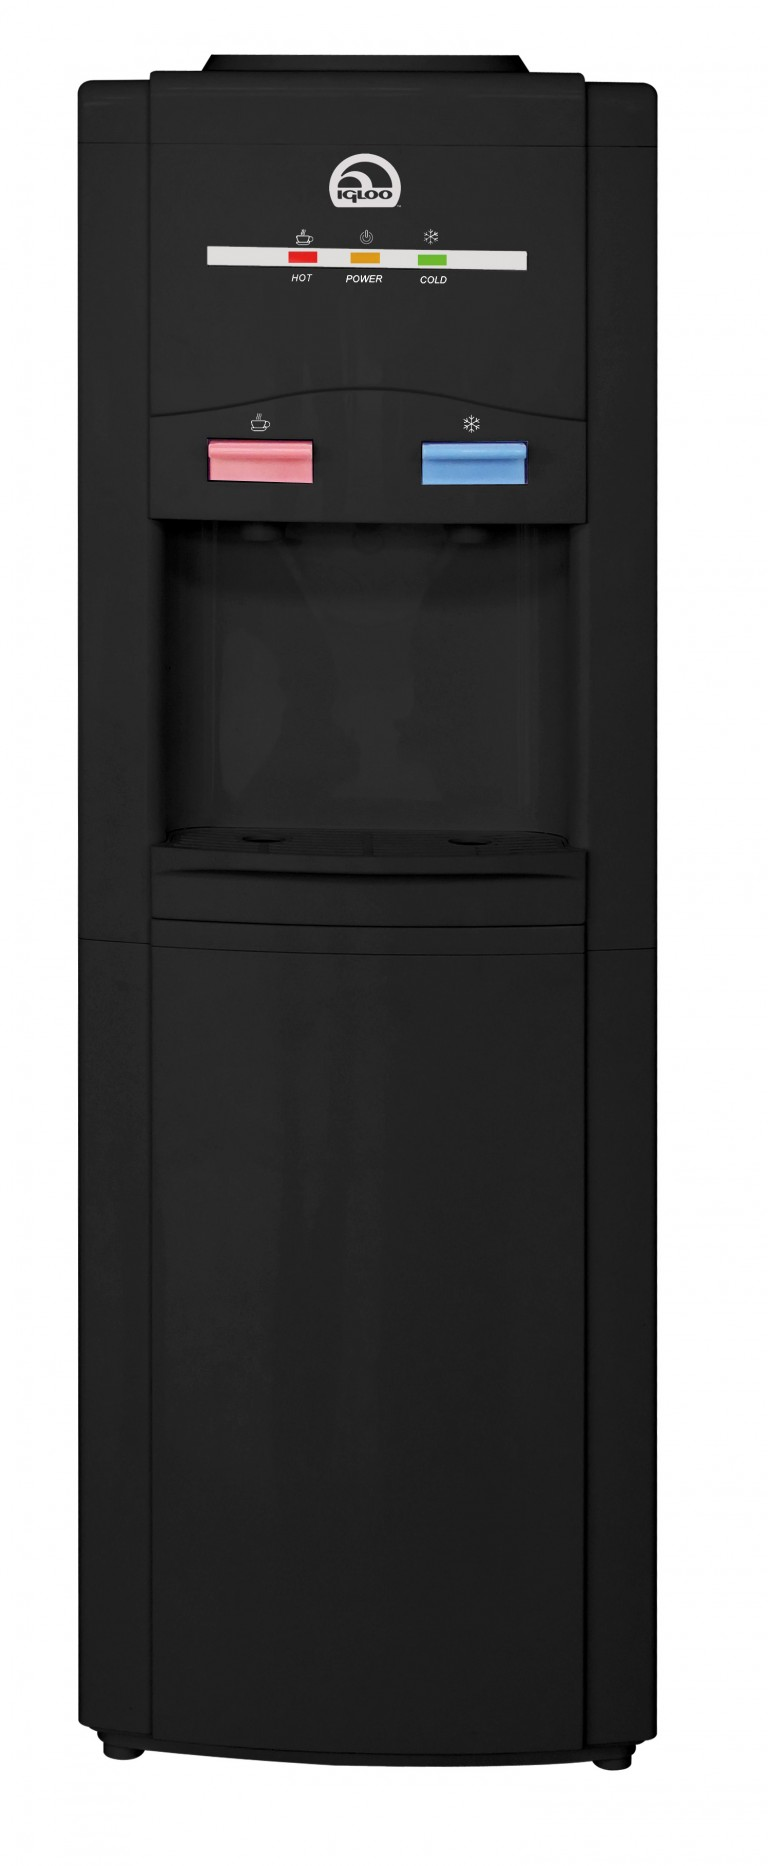 WATER COOLER/DISPENSER